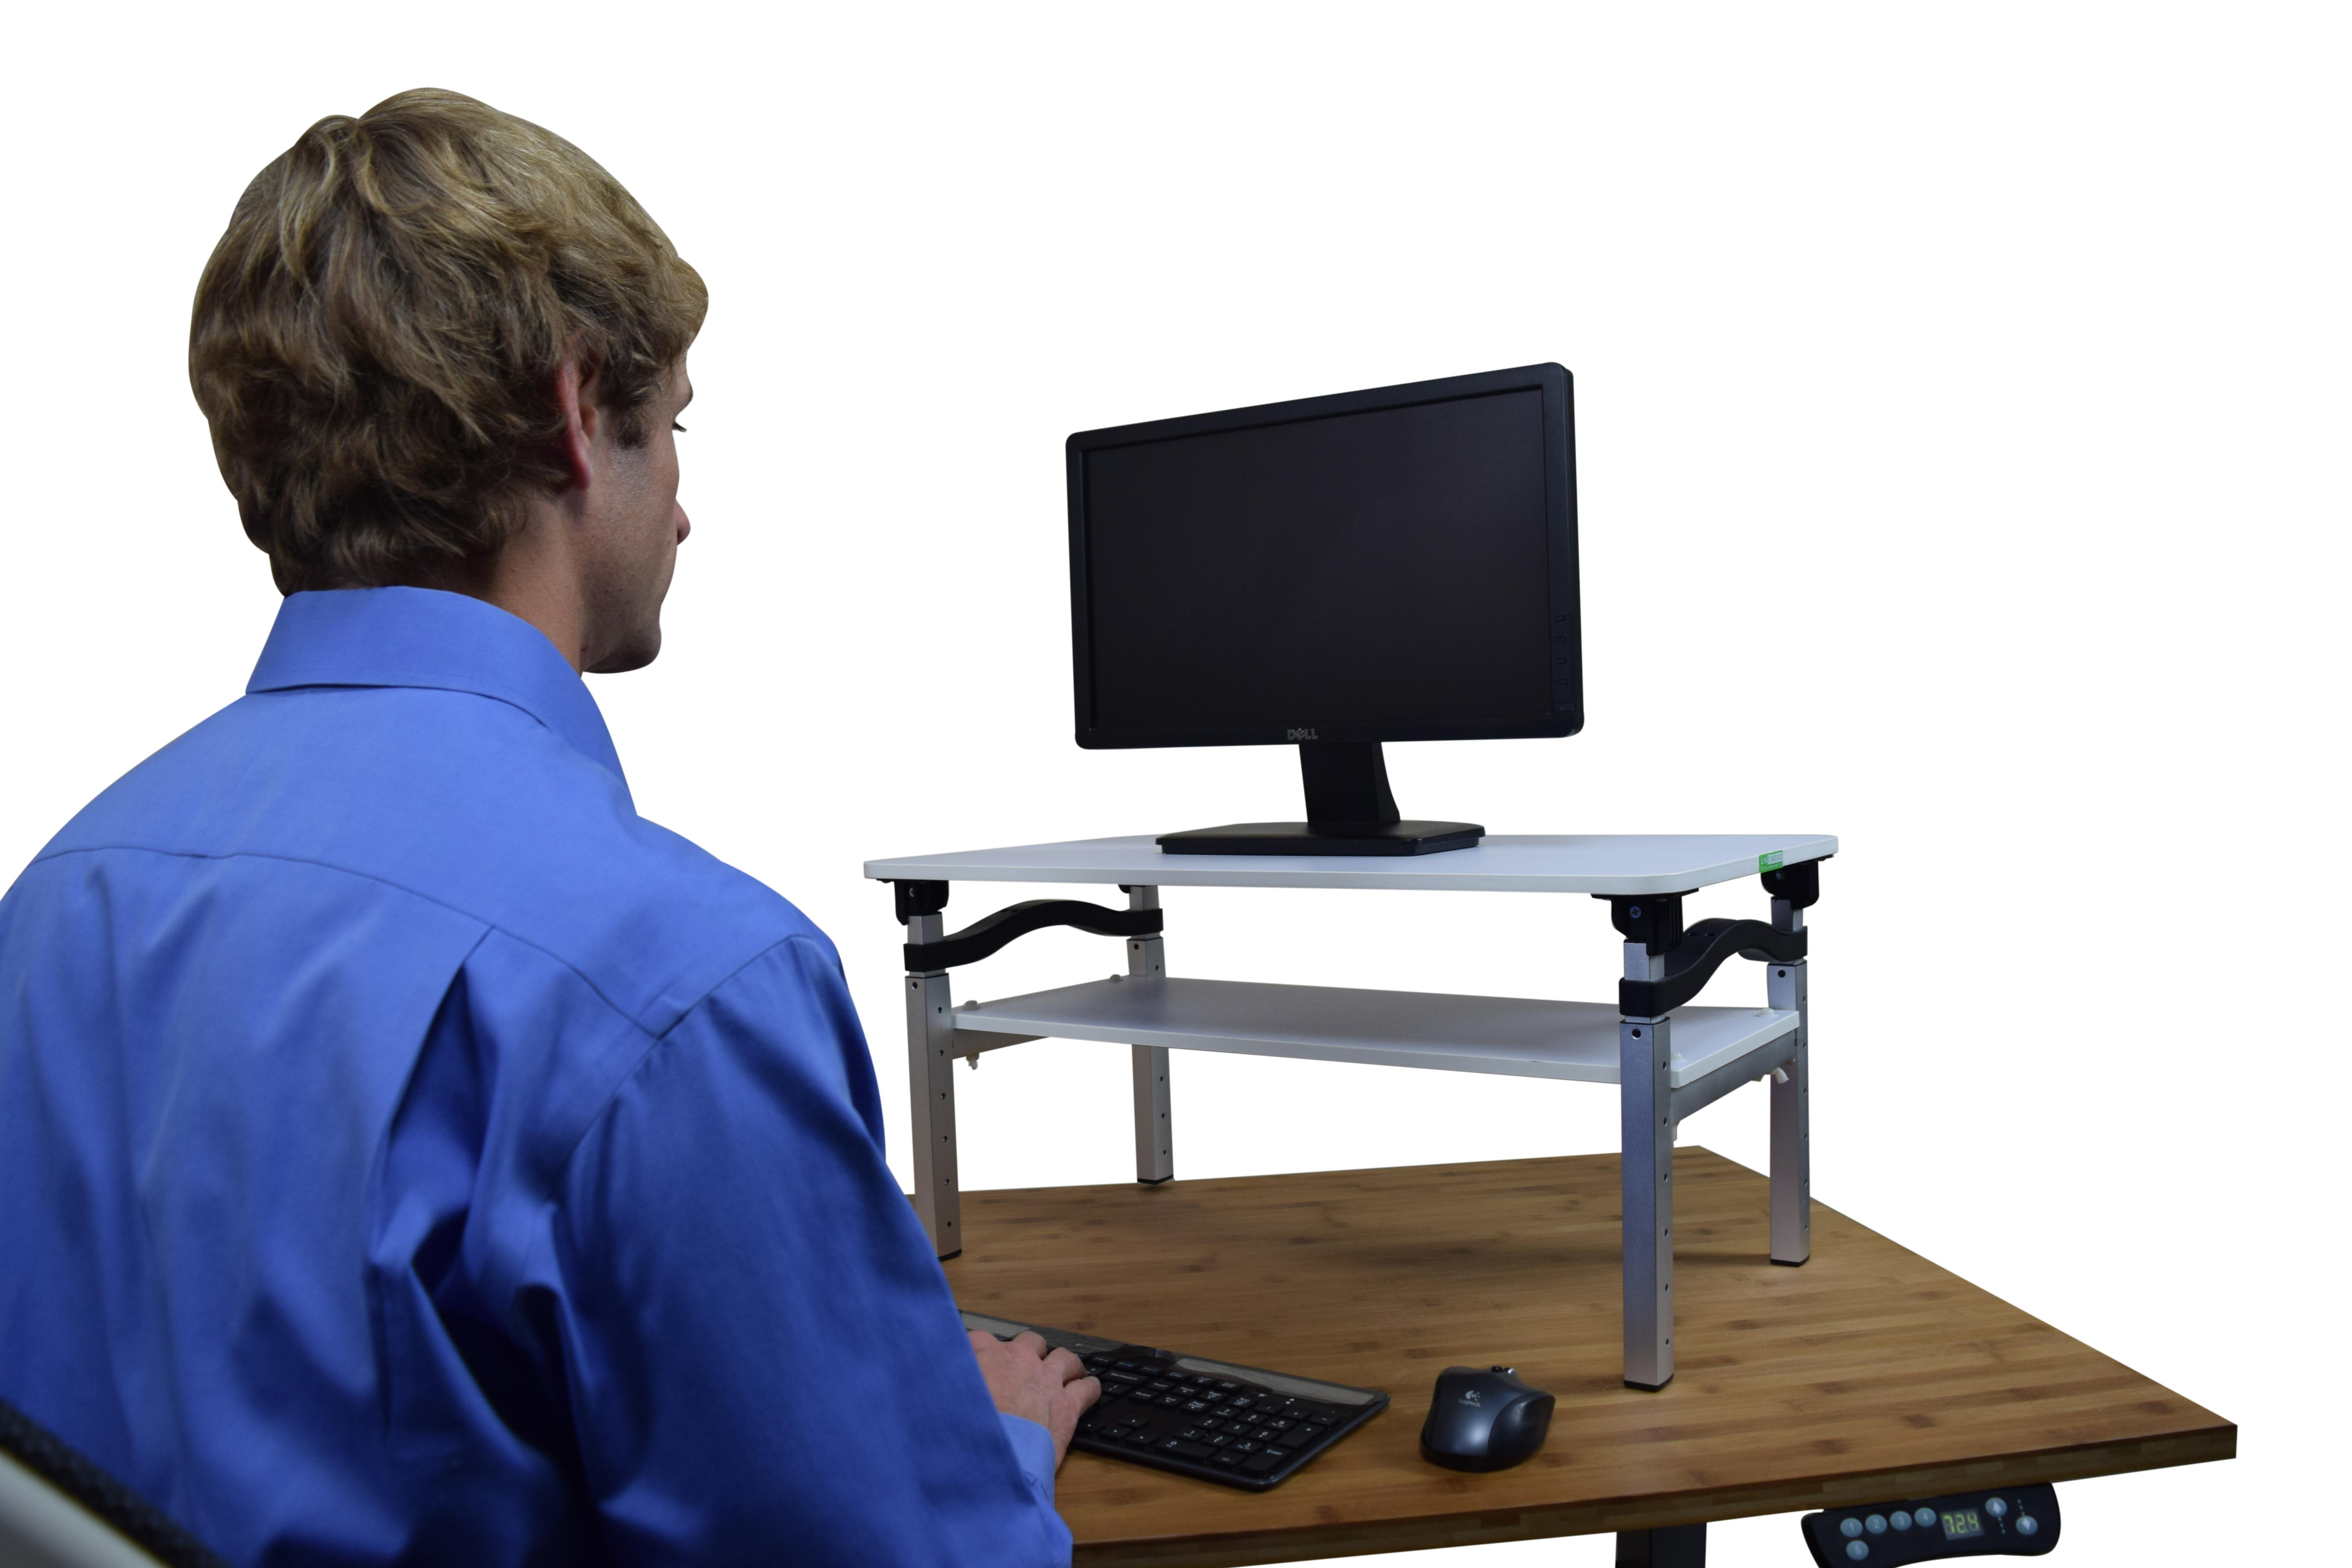 Amazon.com : LIFT Standing Desk Conversion Kit. Tall